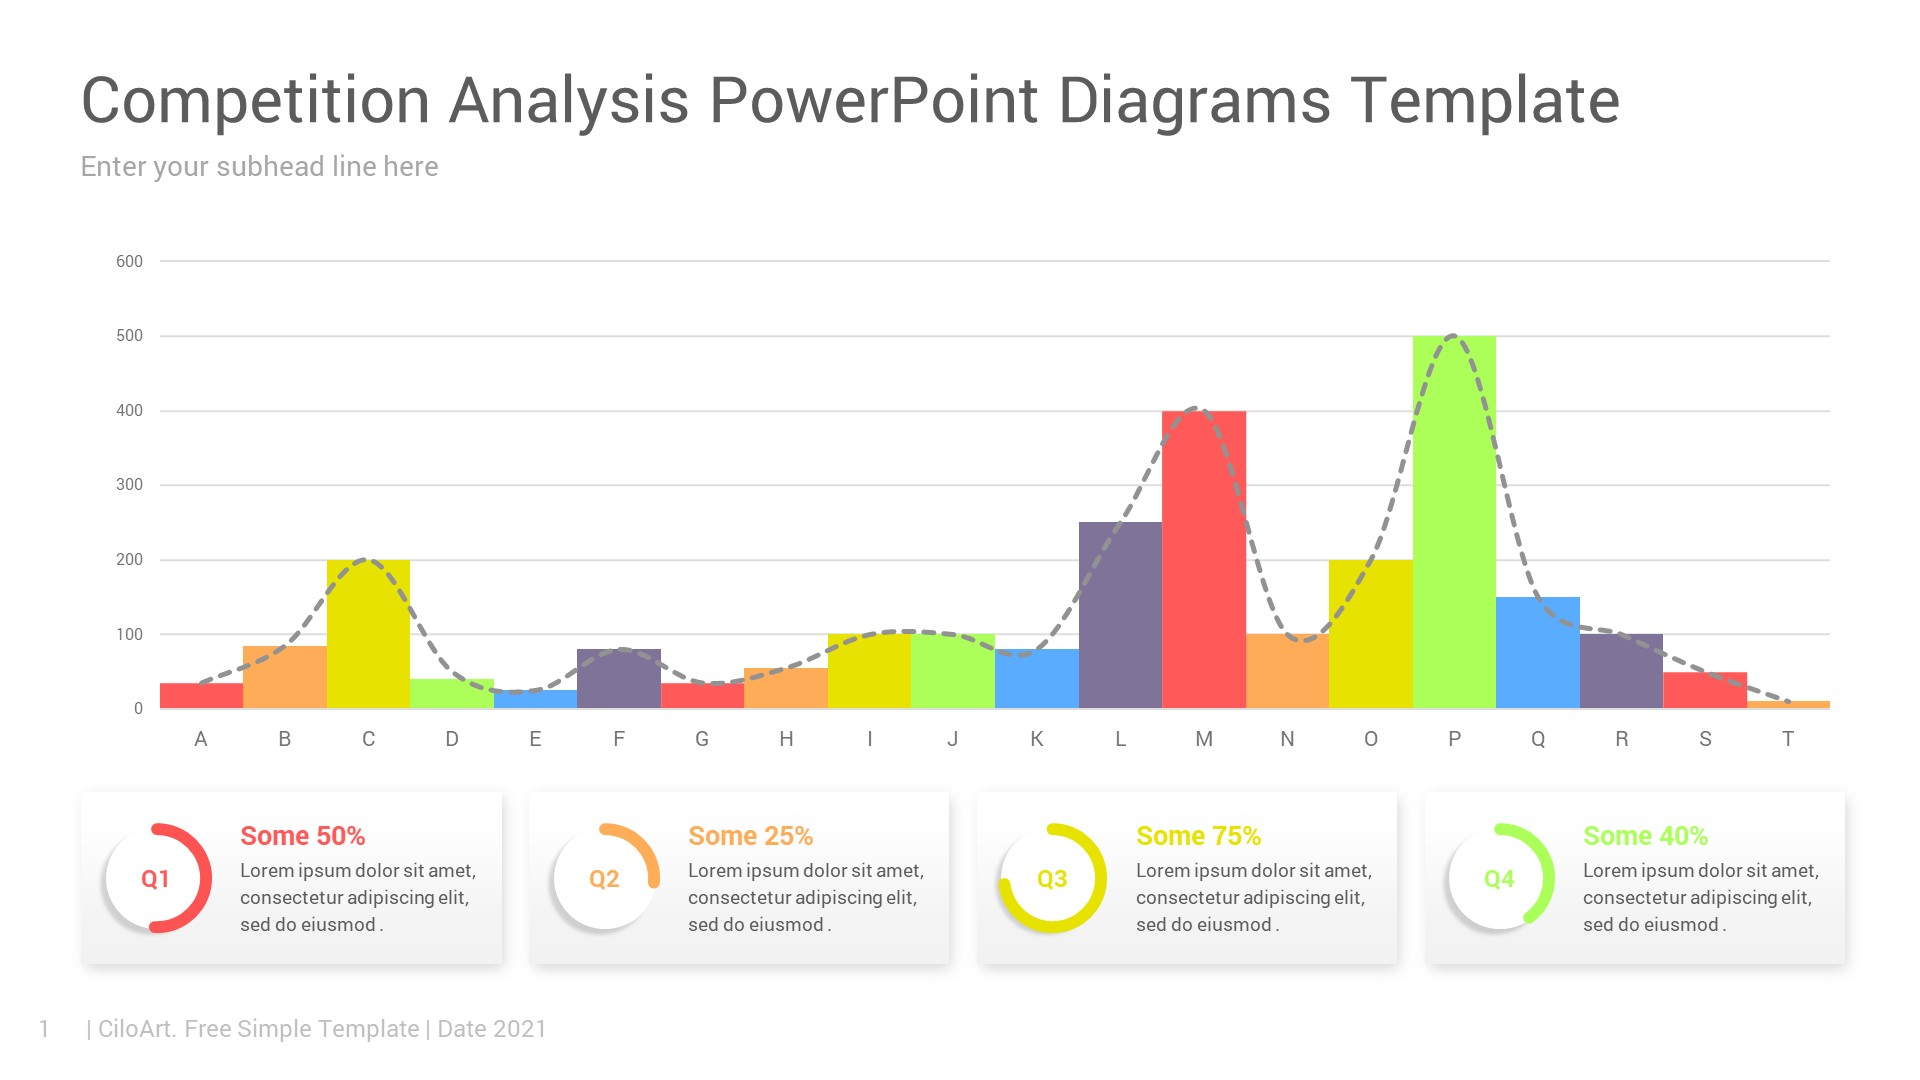 Competition Analysis PowerPoint Diagrams Template